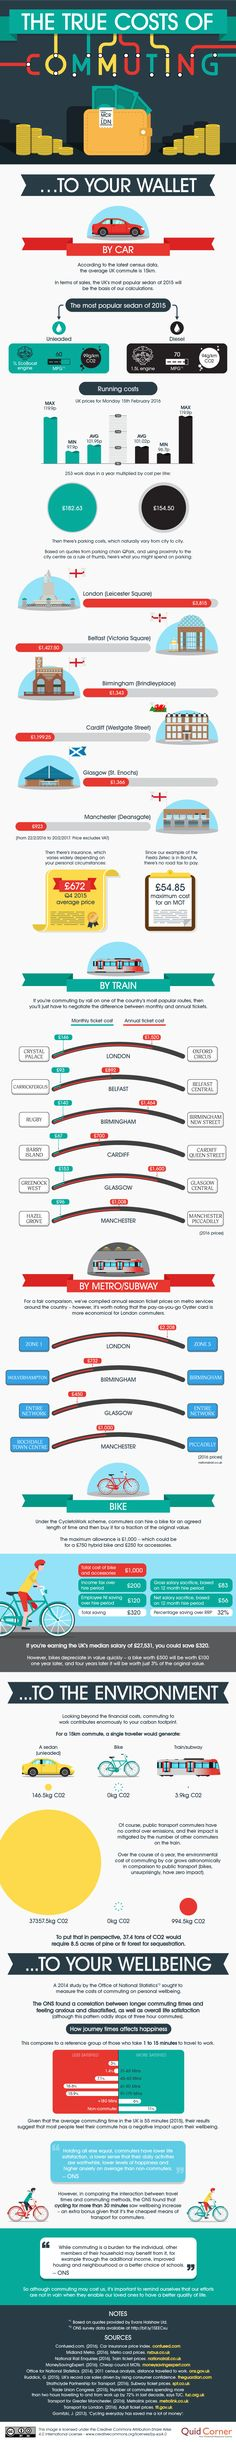 The True Cost of Commuting #Infographic #Transportation